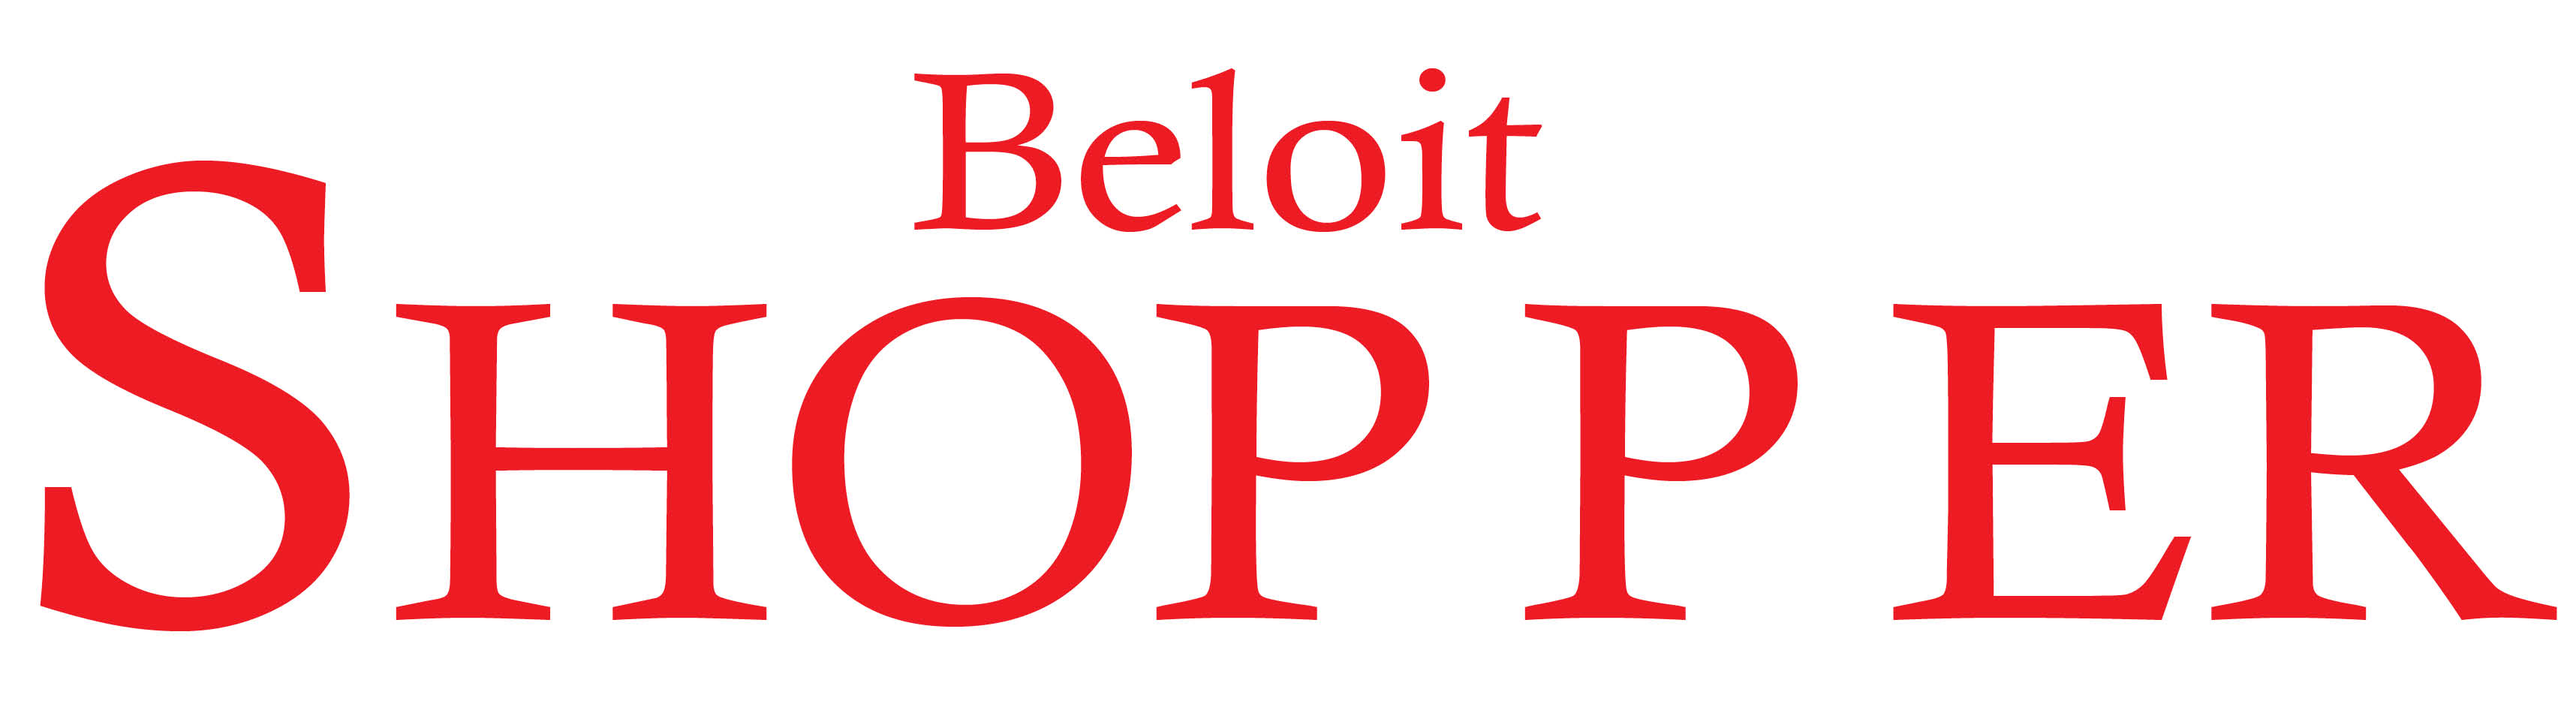 8/3/17 Beloit Shopper